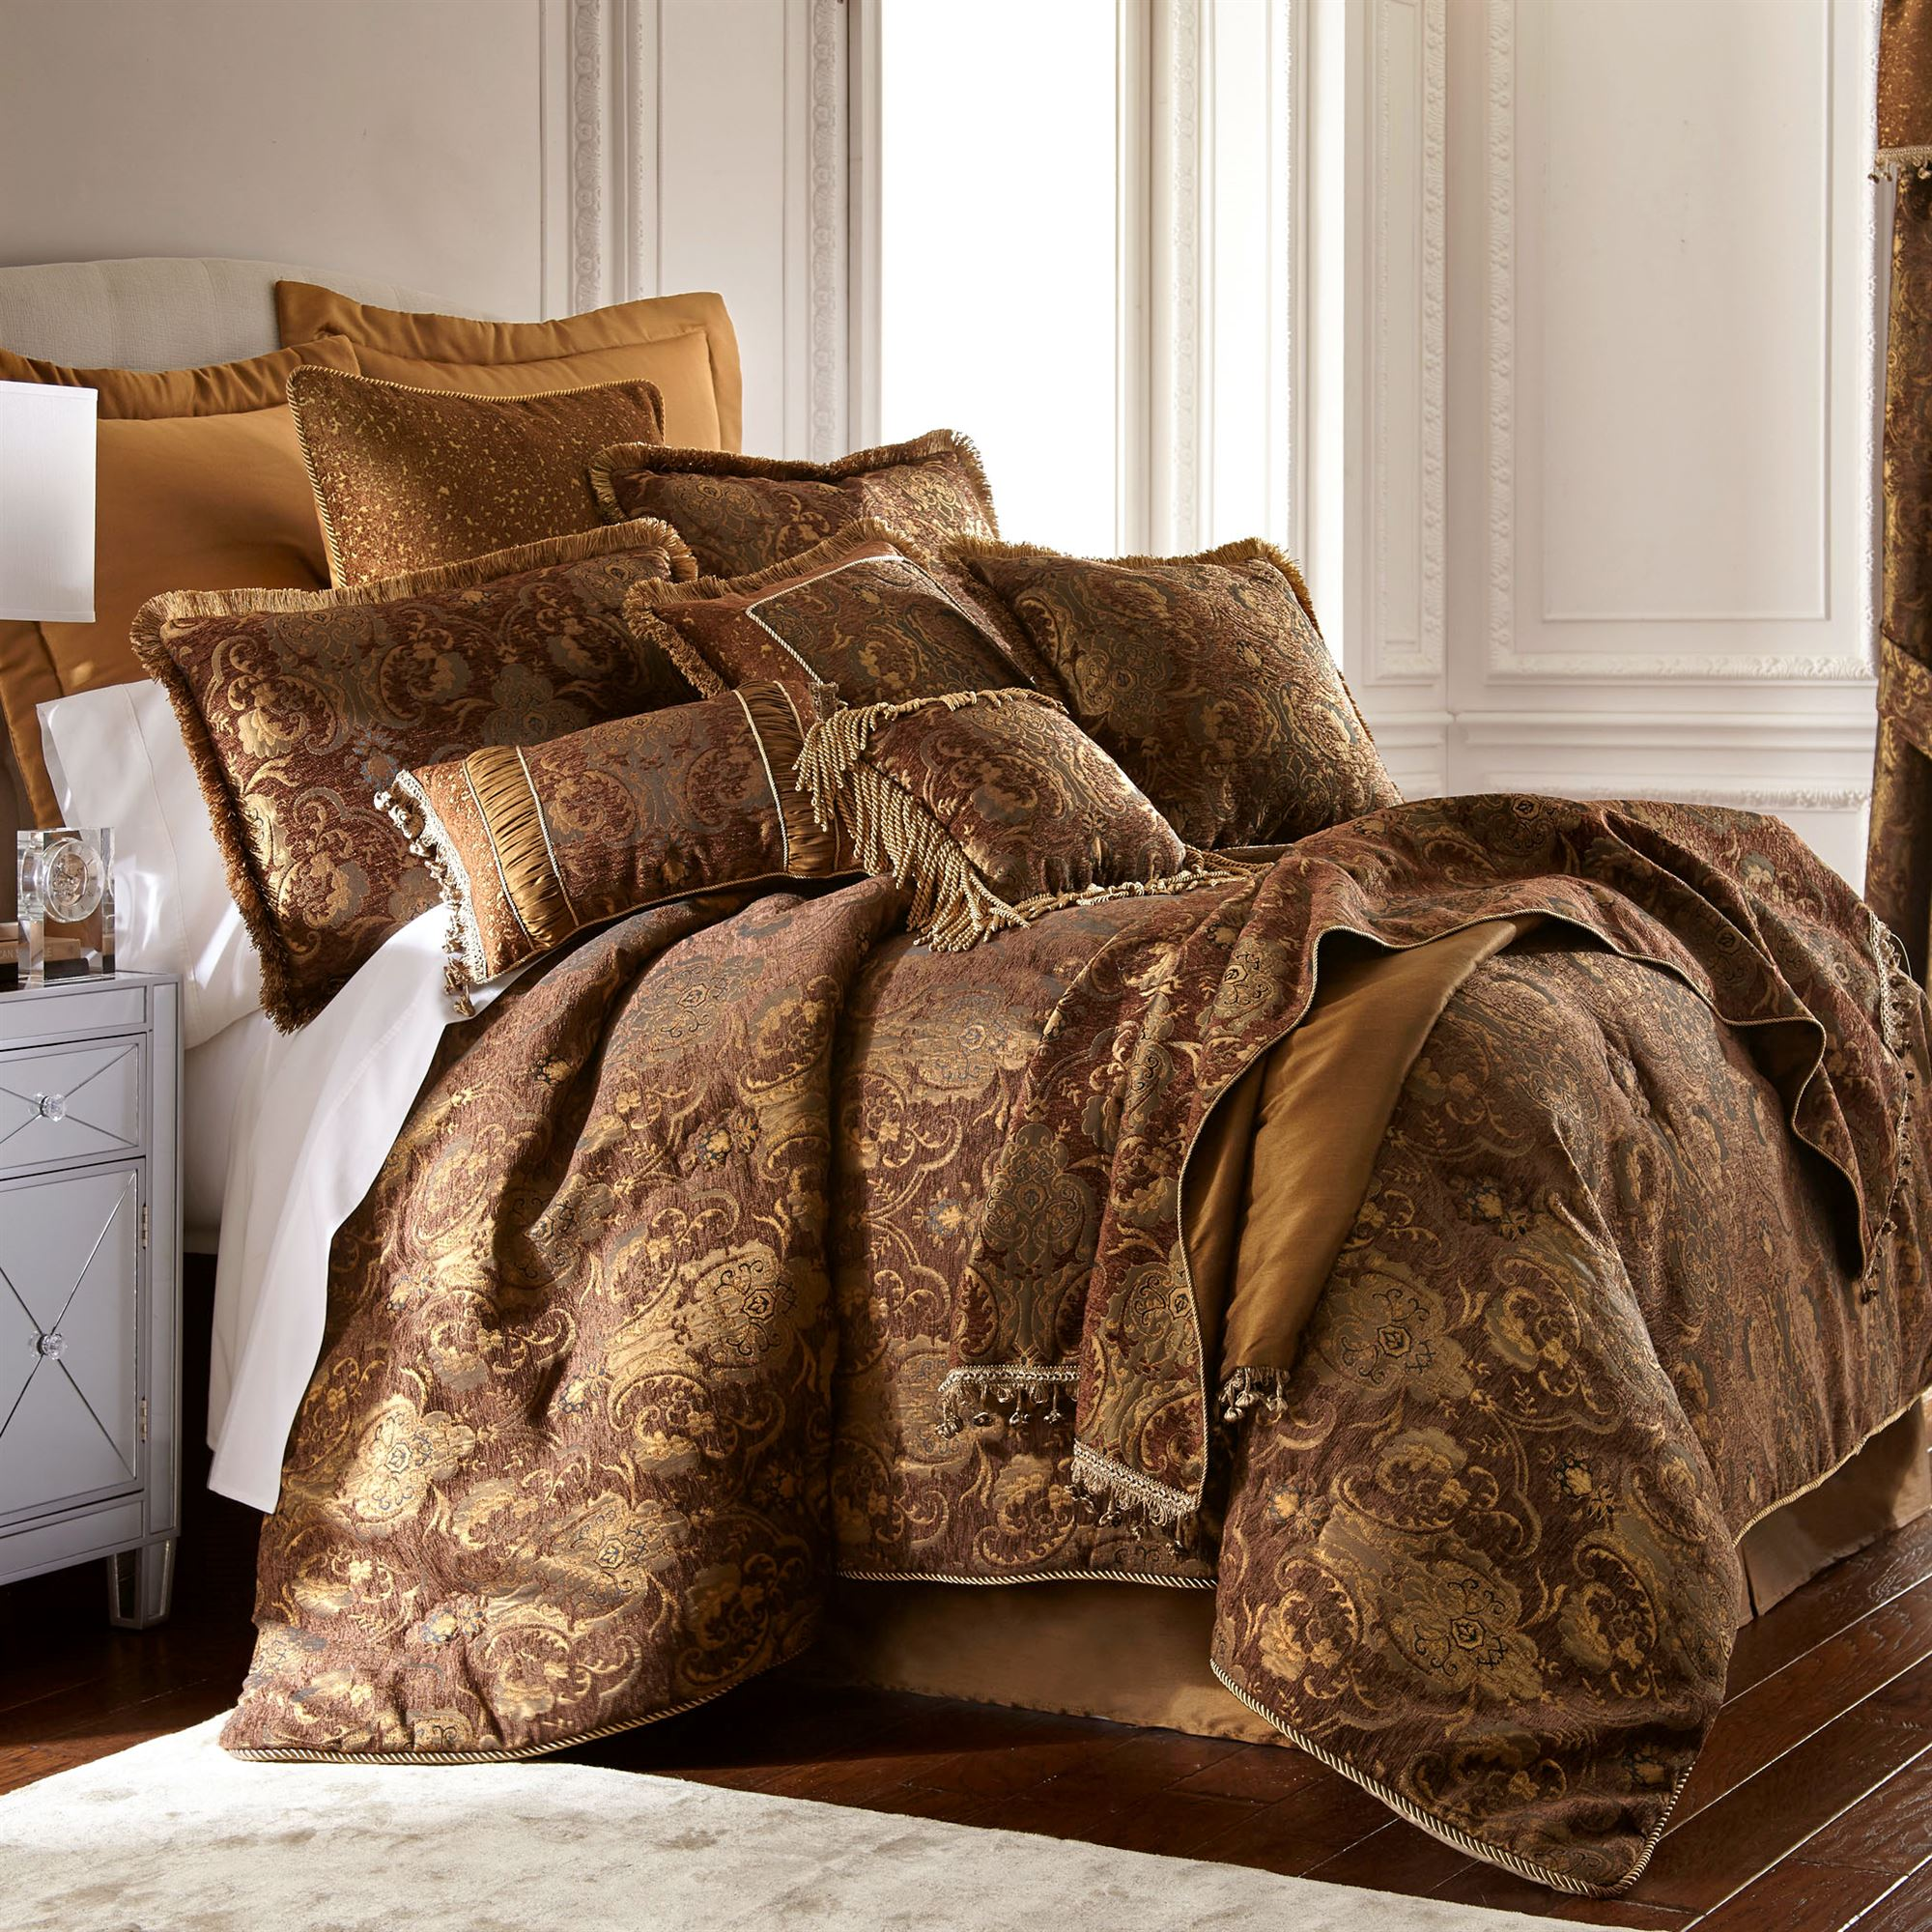 China Art Asian Inspired Brown Comforter Bedding By Sherry